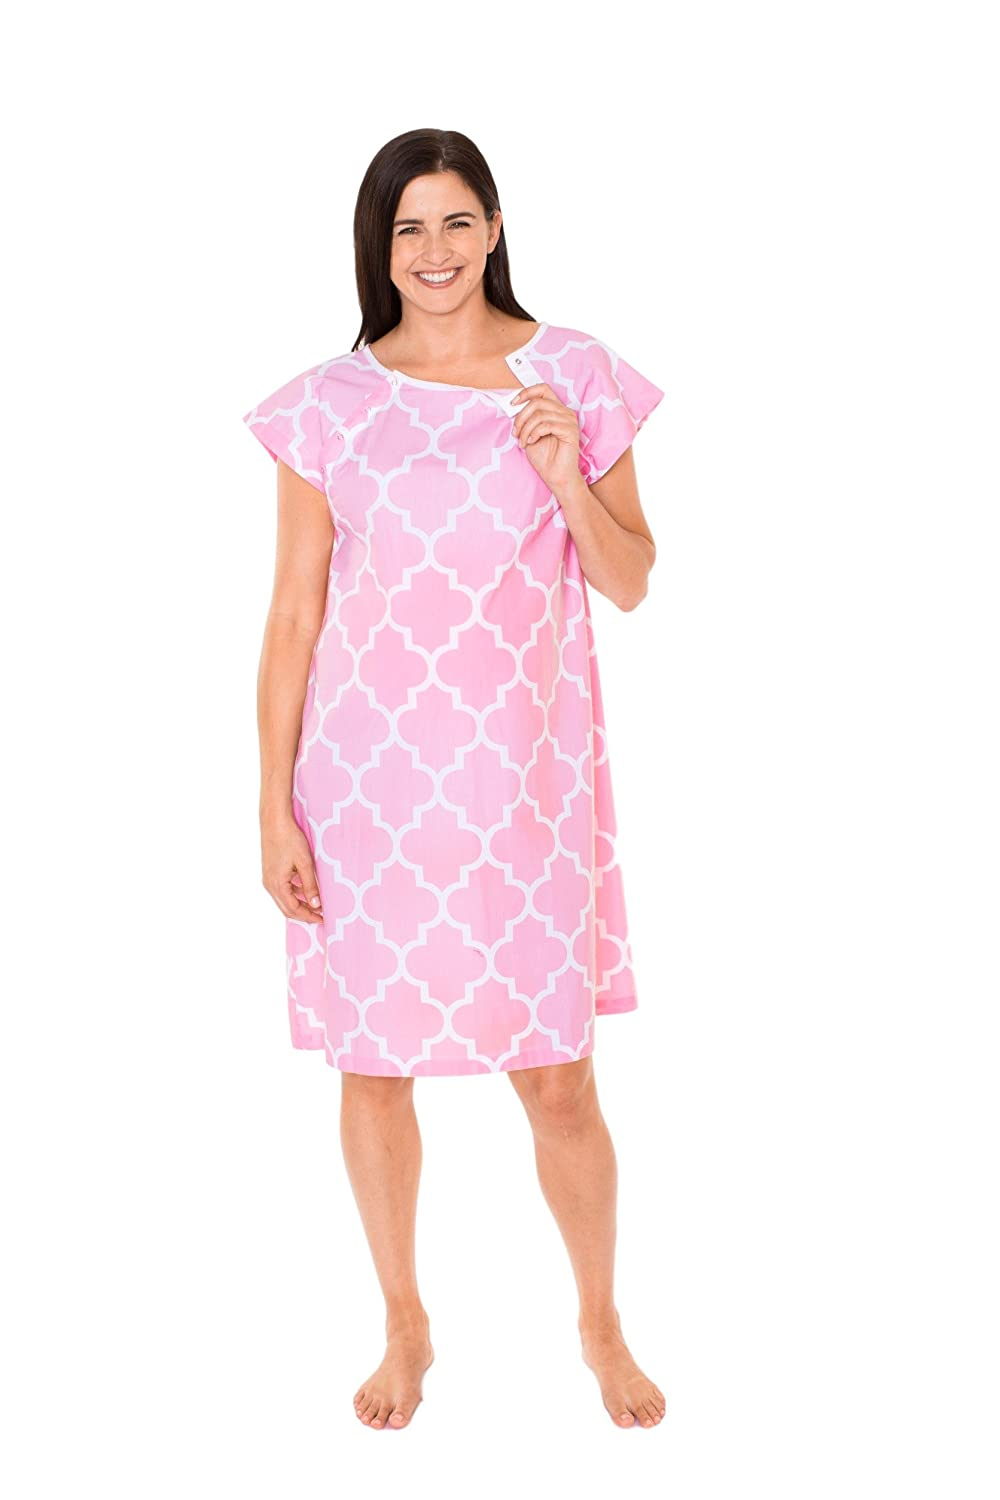 Charming Free Maternity Hospital Gown Pattern Images - Images for ...